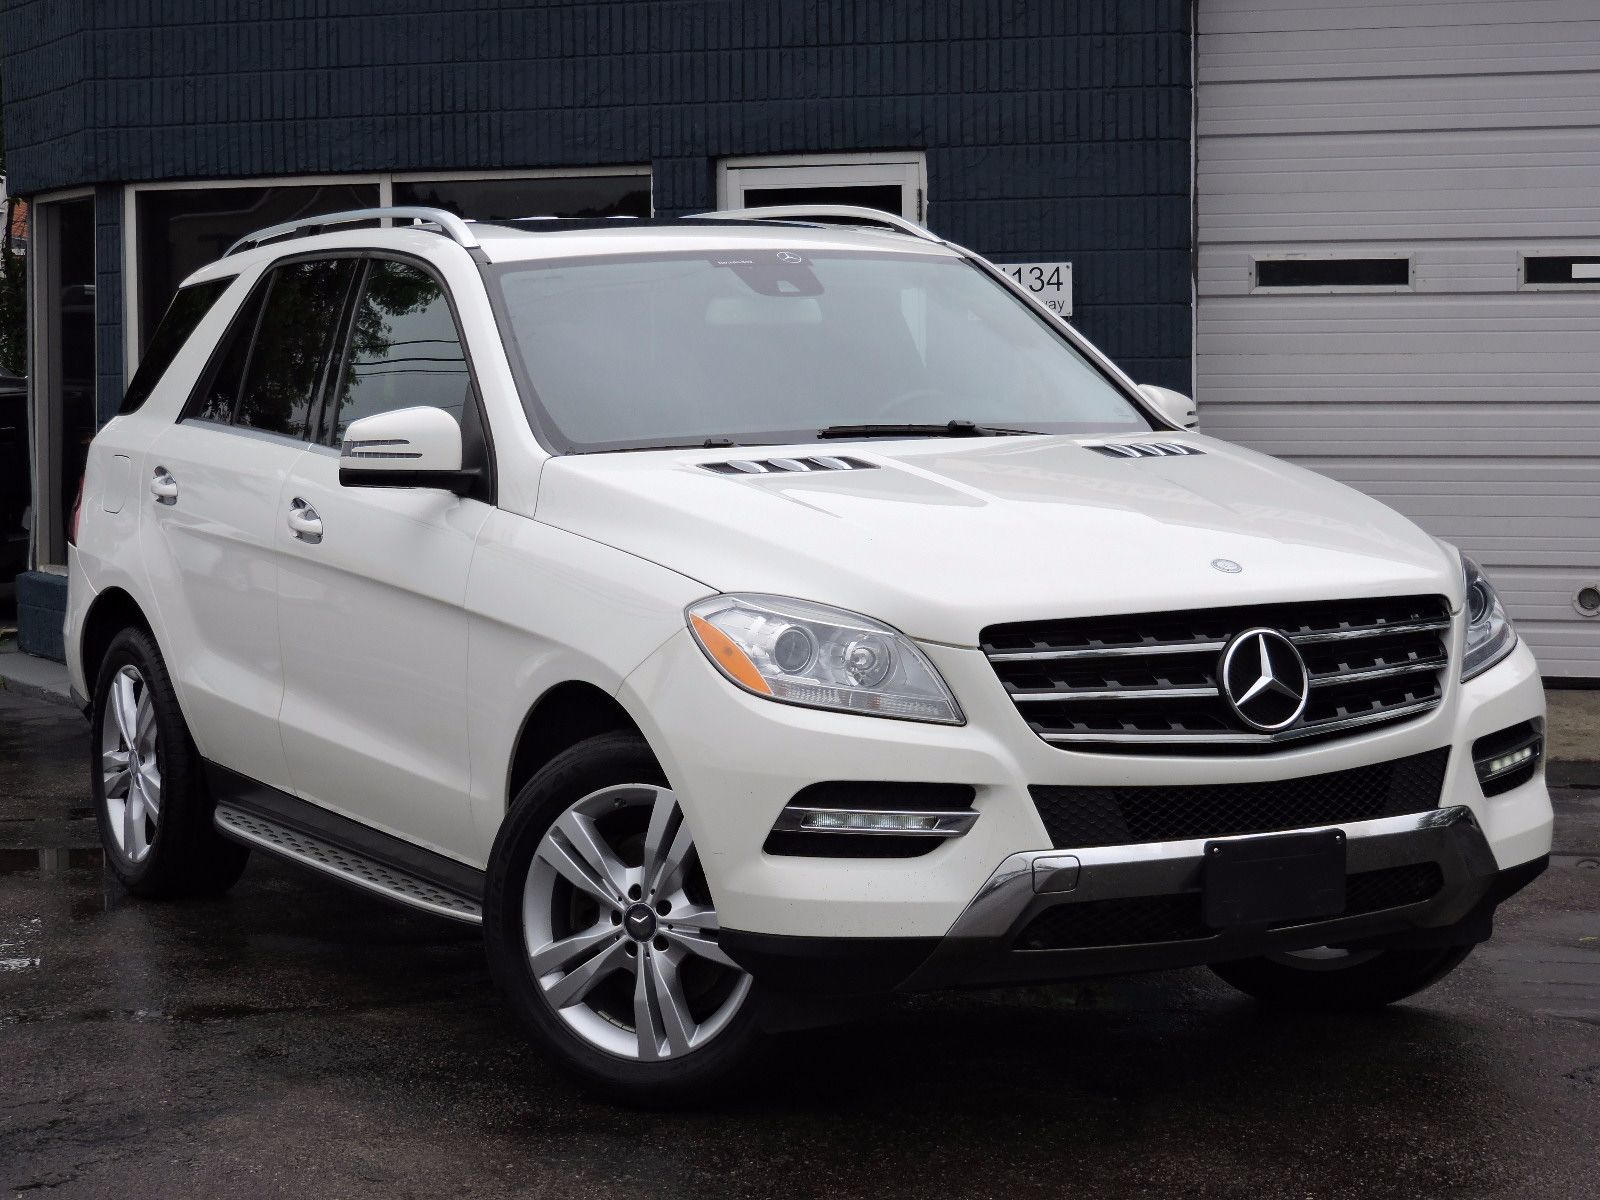 used 2013 mercedes benz ml 350 sl at saugus auto mall. Black Bedroom Furniture Sets. Home Design Ideas